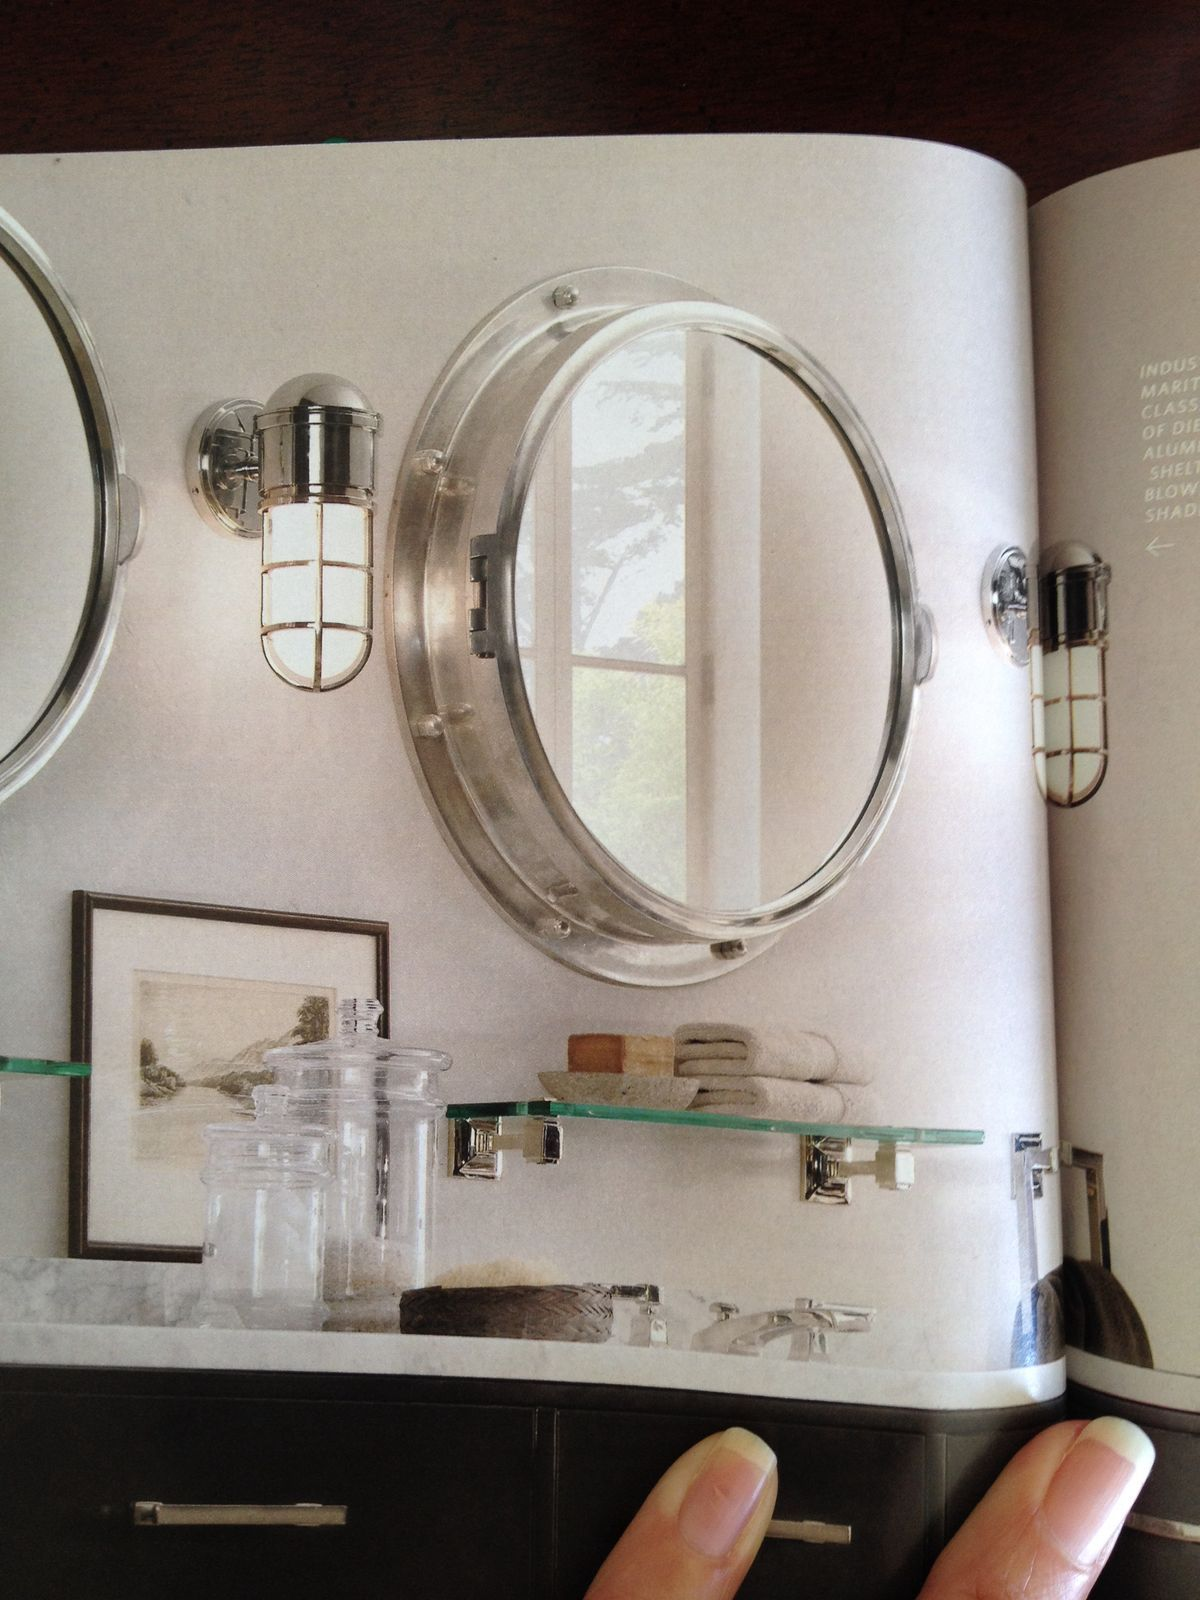 Powder room mirror (With images) | Nautical light fixtures ...